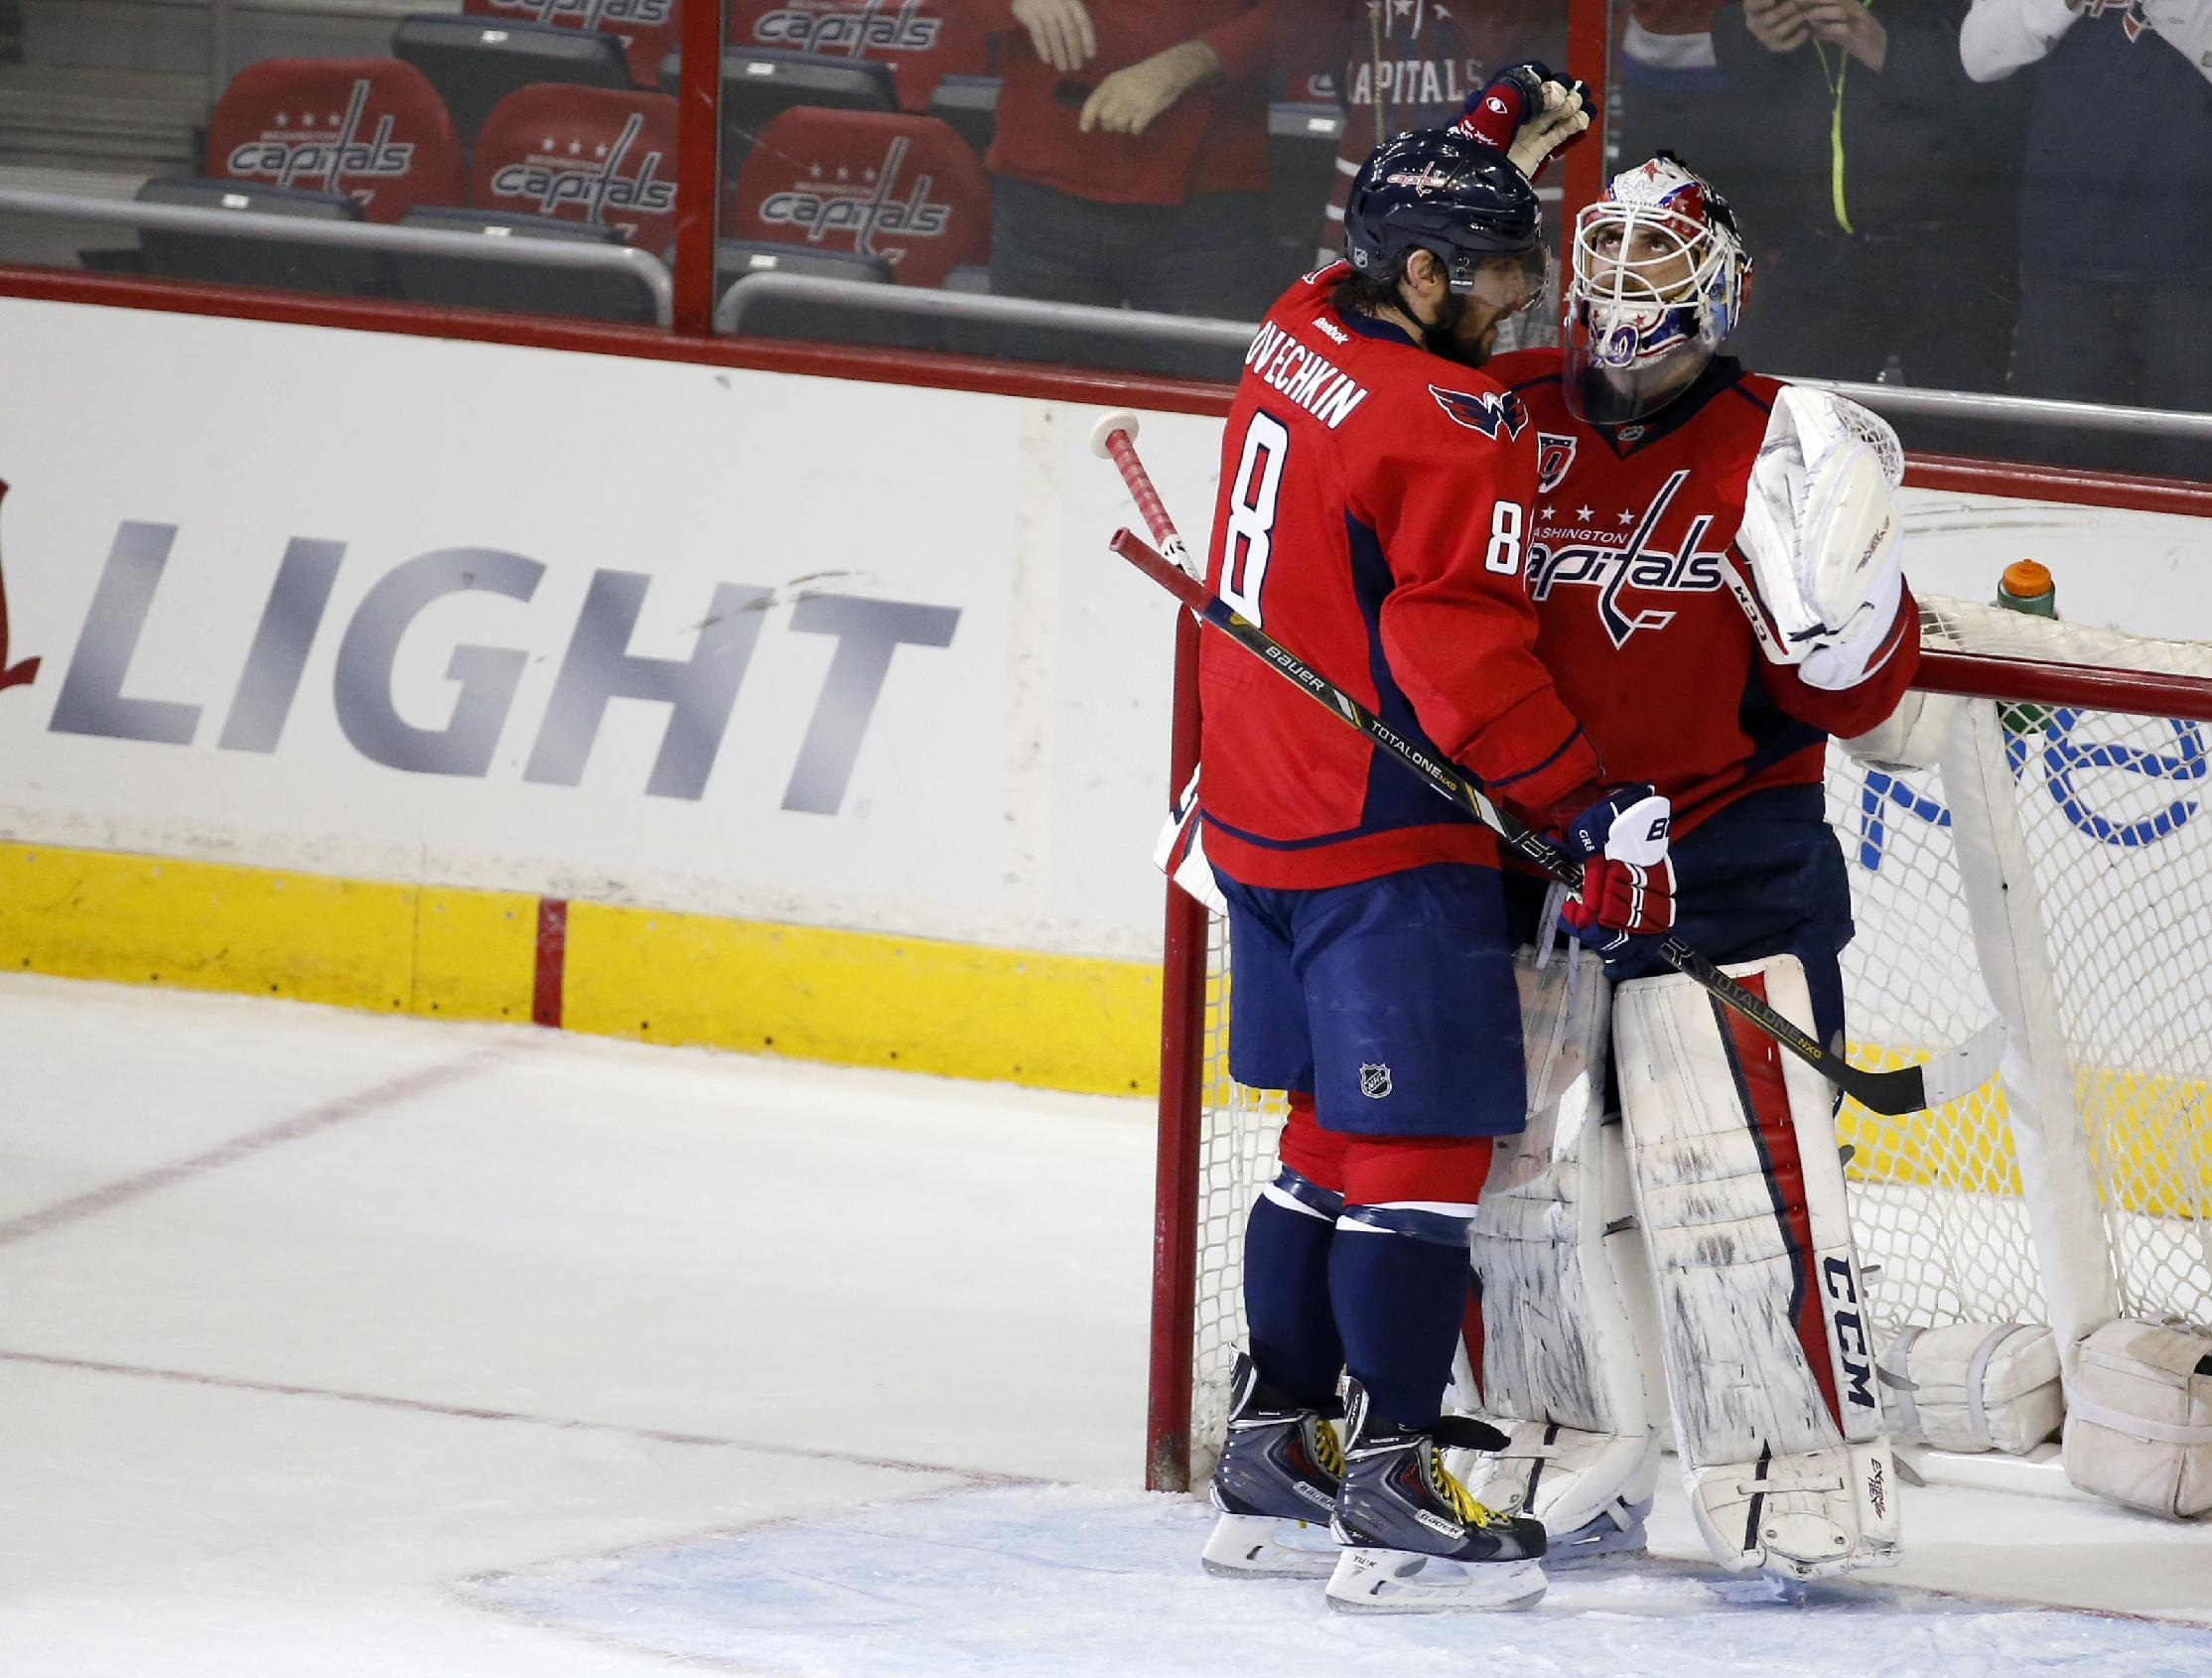 Ovi as Abe: Ovechkin's goals bring Lincoln back for Capitals